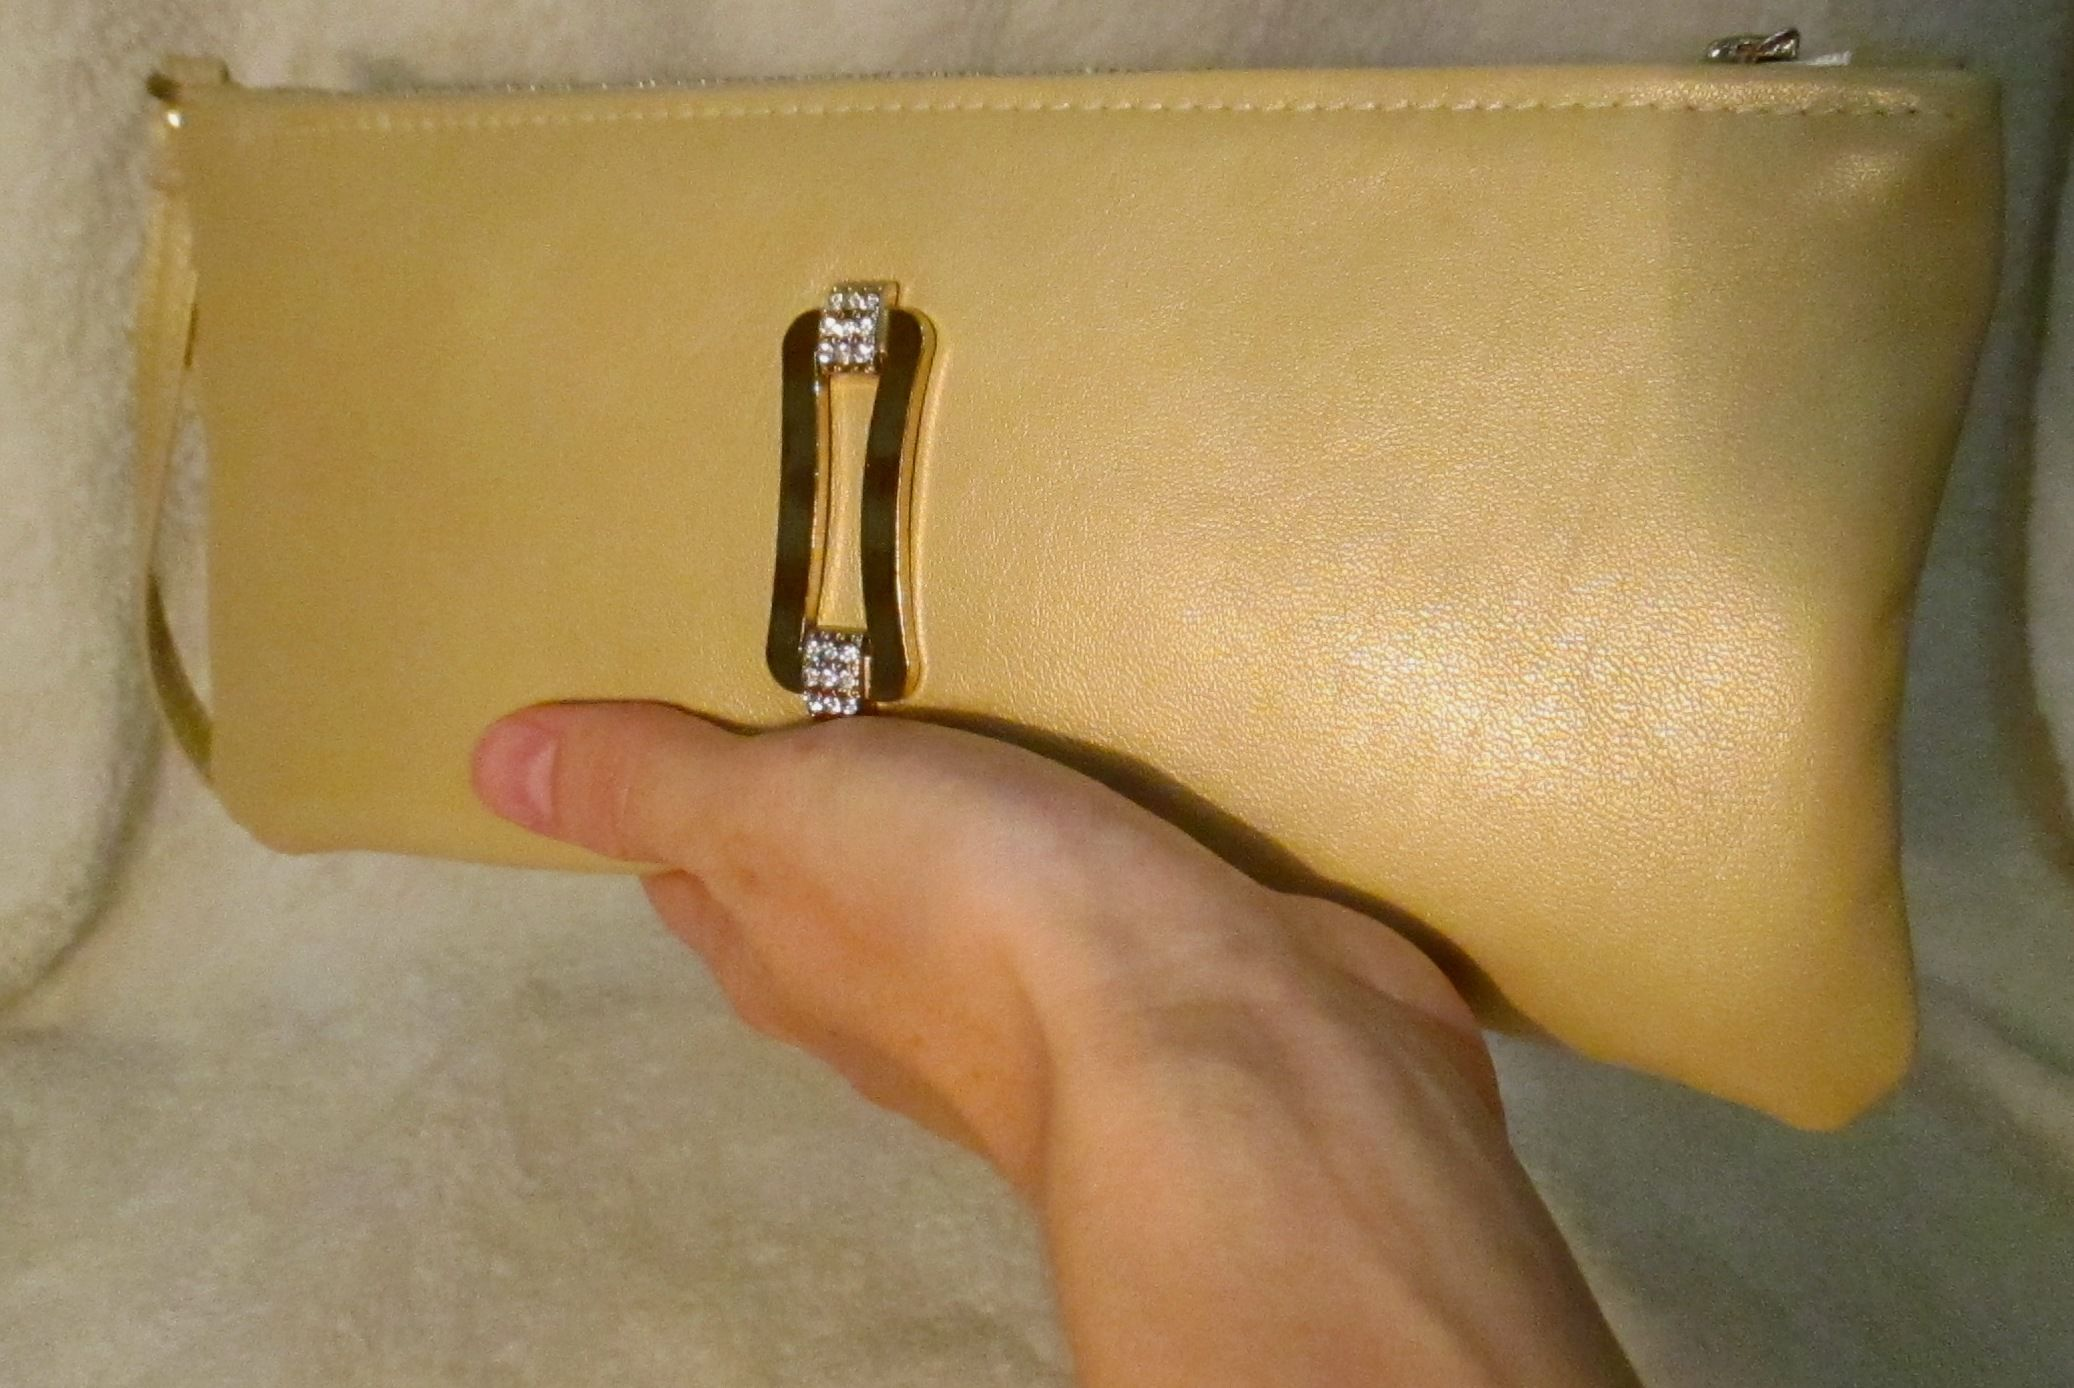 bag leather clutch accessories golden yellow